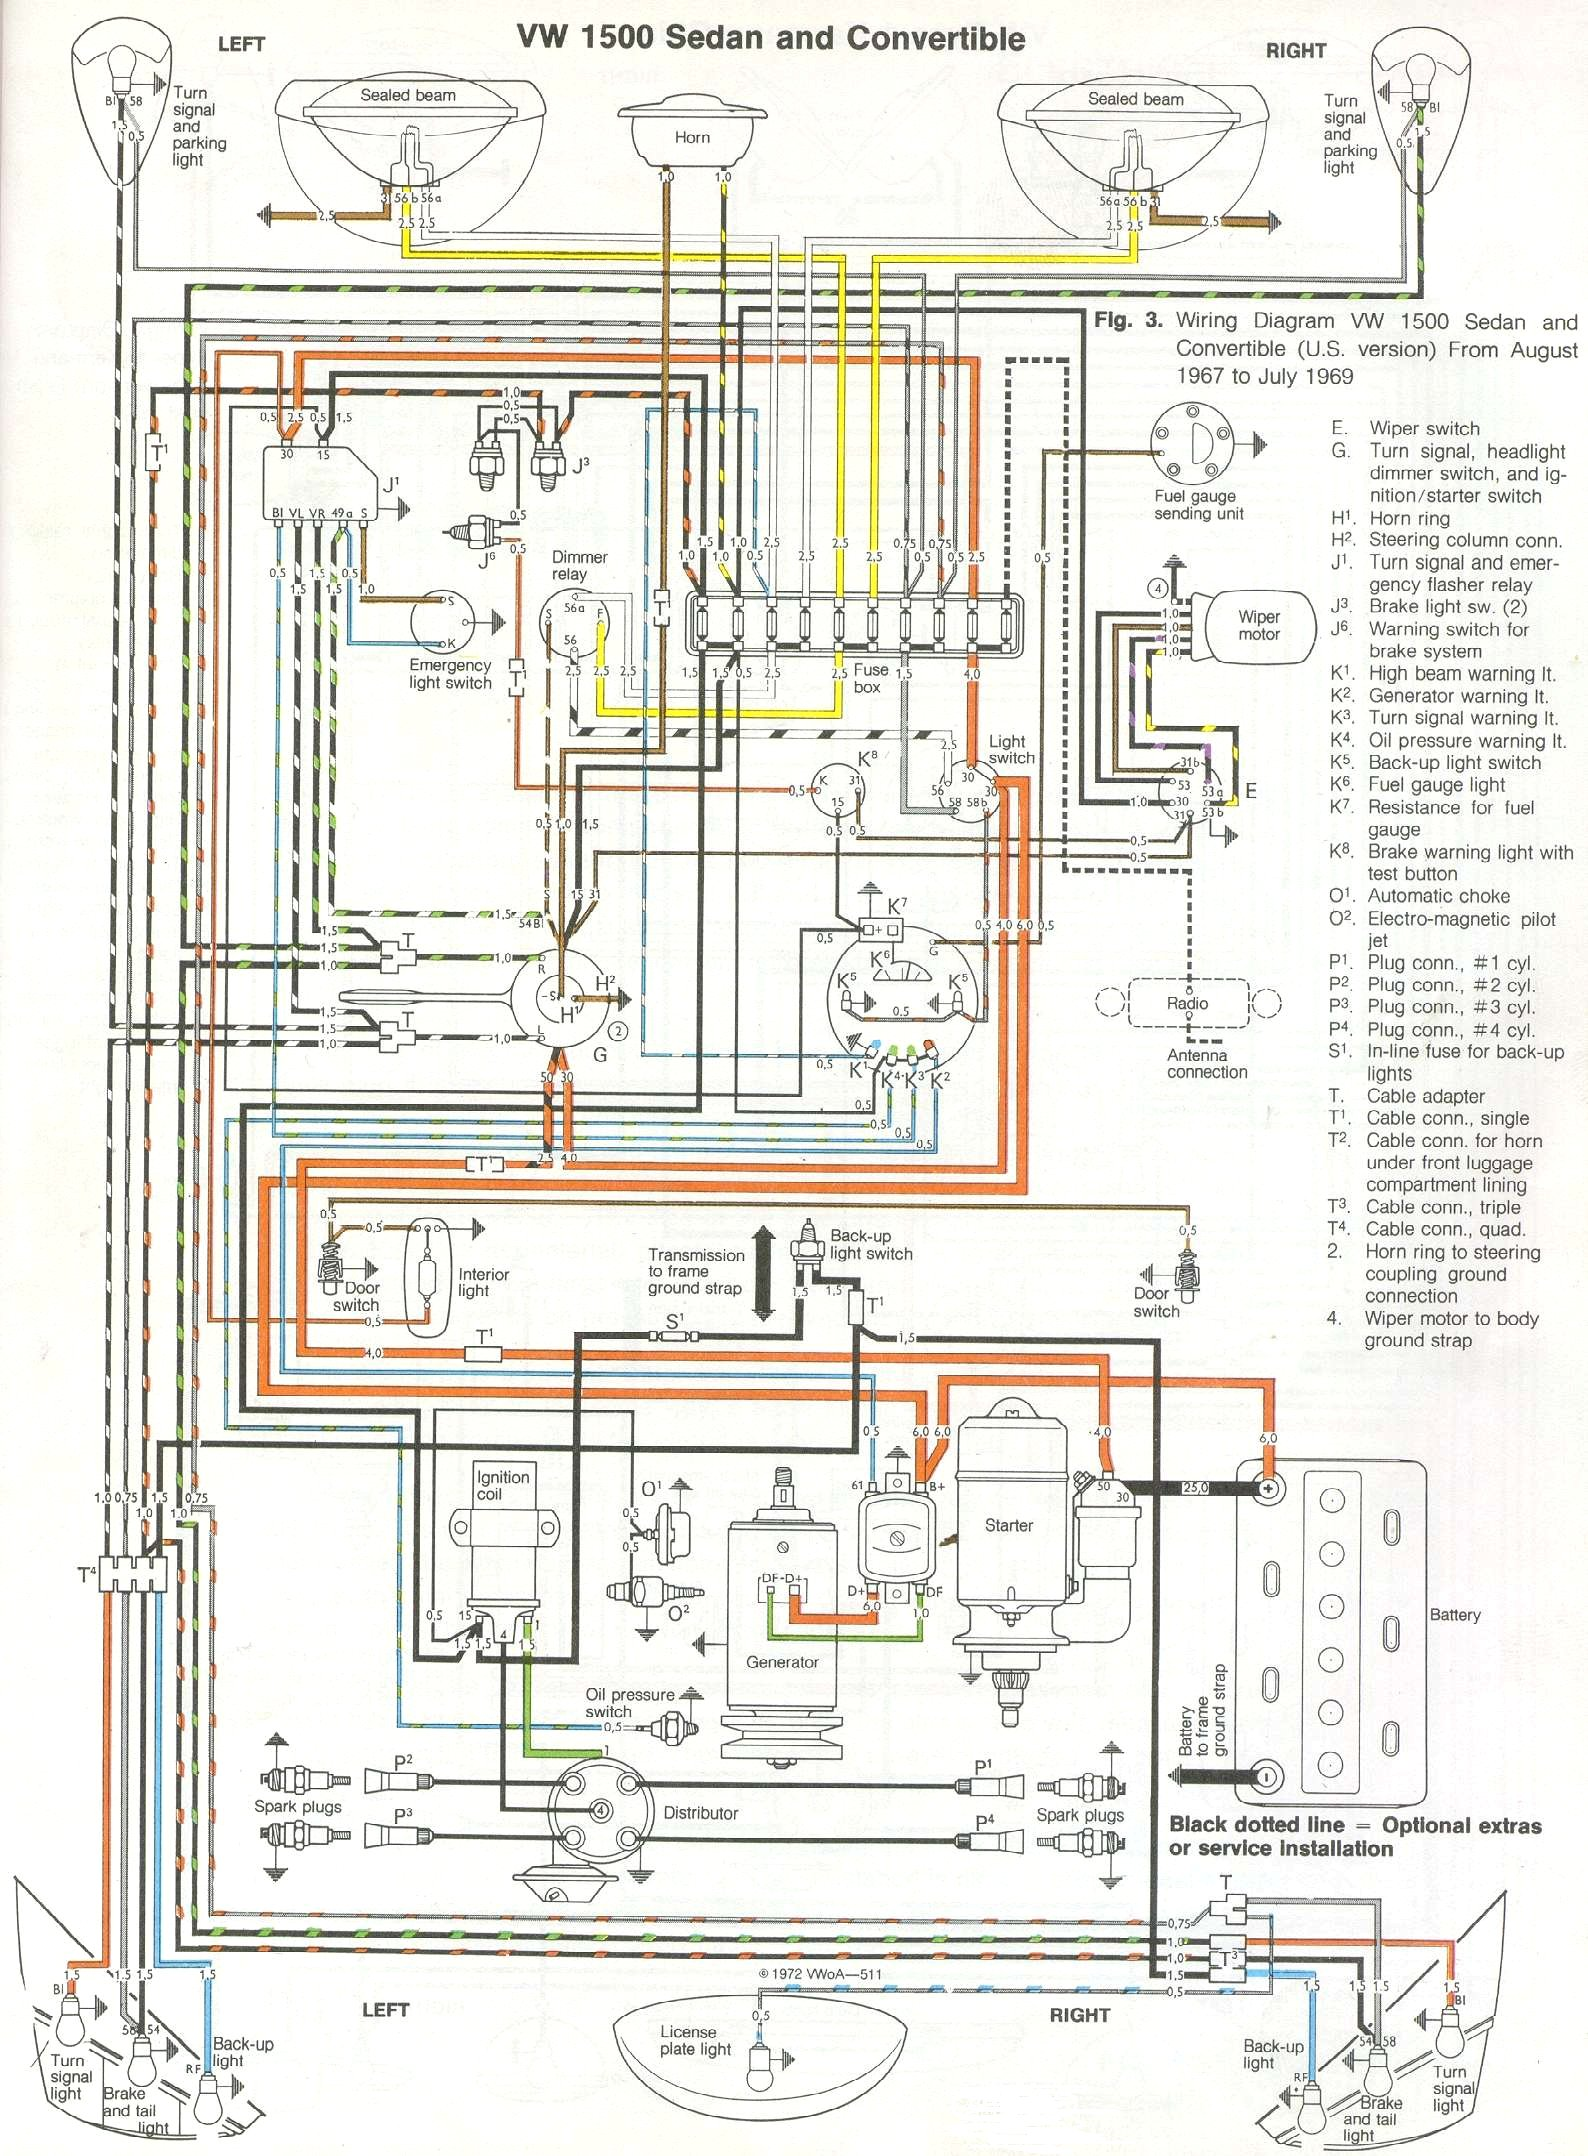 bug_6869 vw wiring harness diagram cj7 wiring harness diagram \u2022 wiring vw type 3 wiring harness at virtualis.co